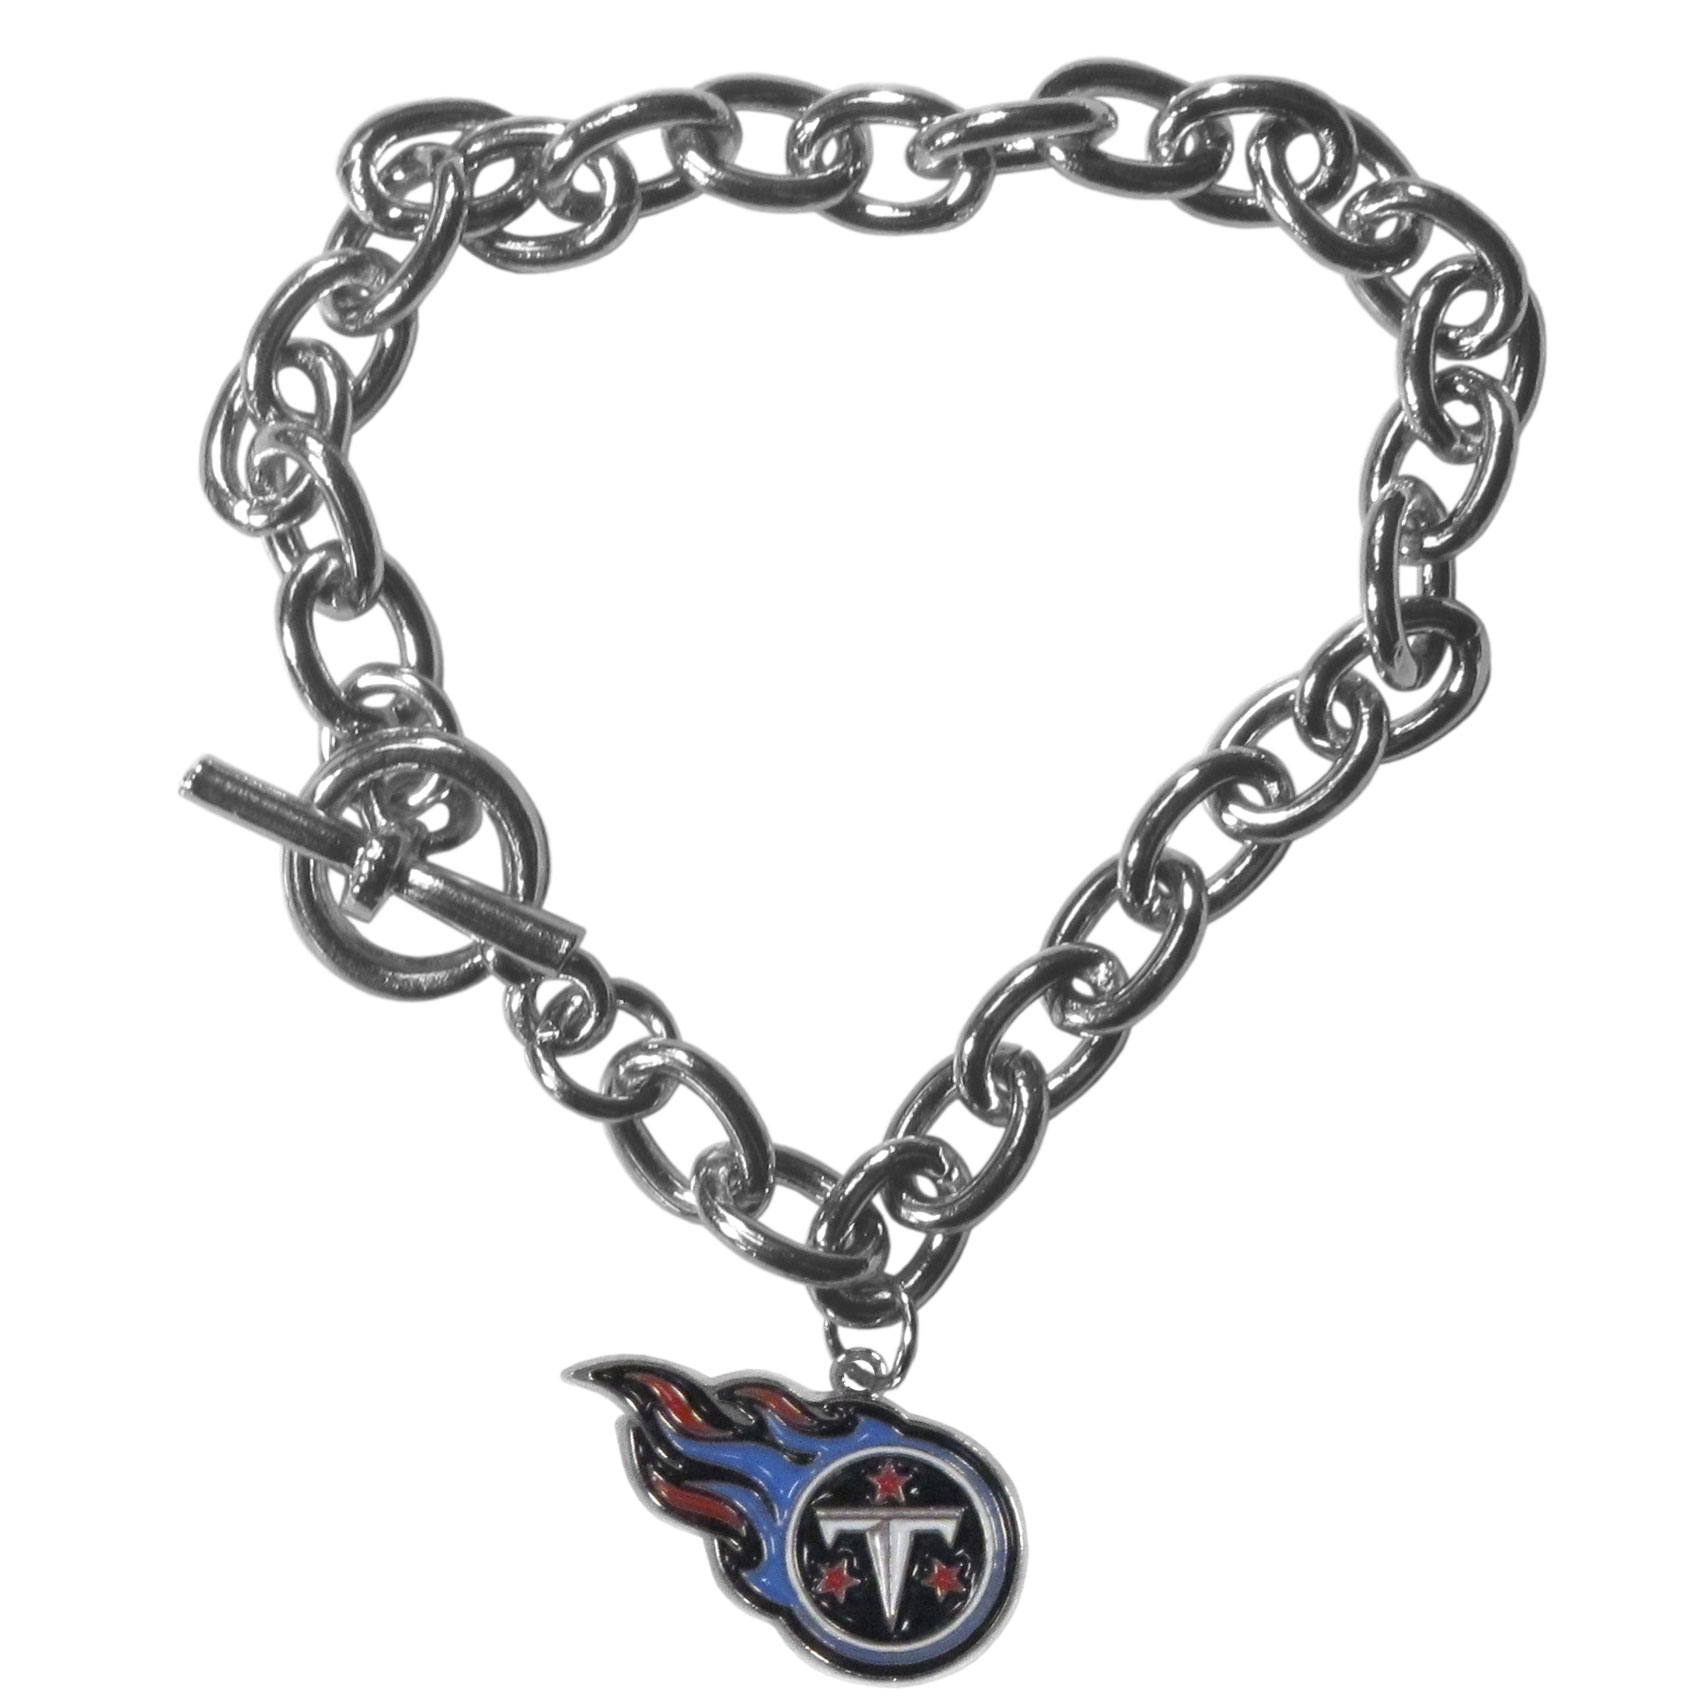 Tennessee Titans Charm Chain Bracelets - Our classic single charm bracelet is a great way to show off your team pride! The 7.5 inch large link chain features a high polish Tennessee Titans charm and features a toggle clasp which makes it super easy to take on and off. Officially licensed NFL product Licensee: Siskiyou Buckle .com